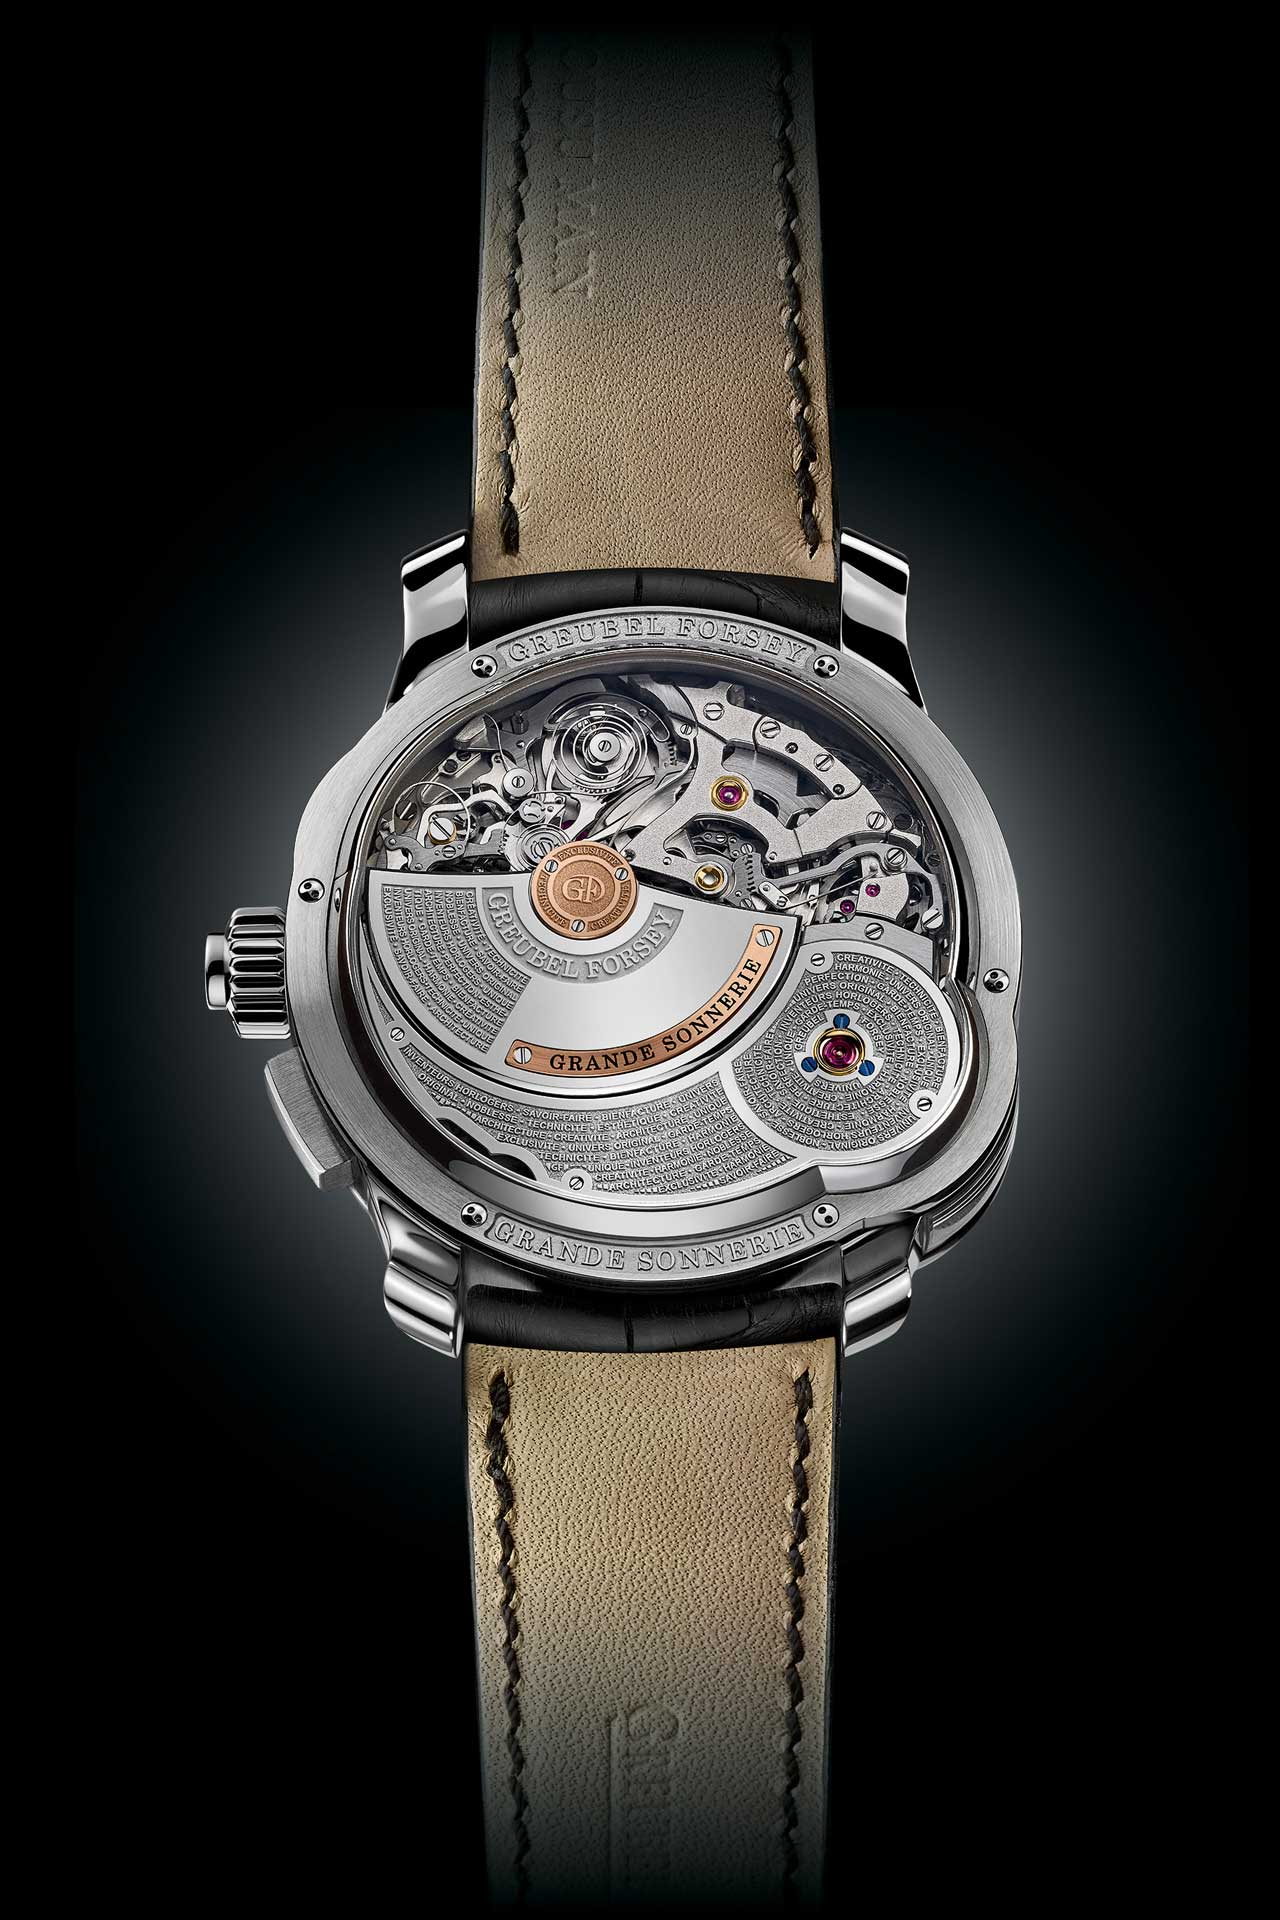 The Greubel Forsey Grande Sonnerie